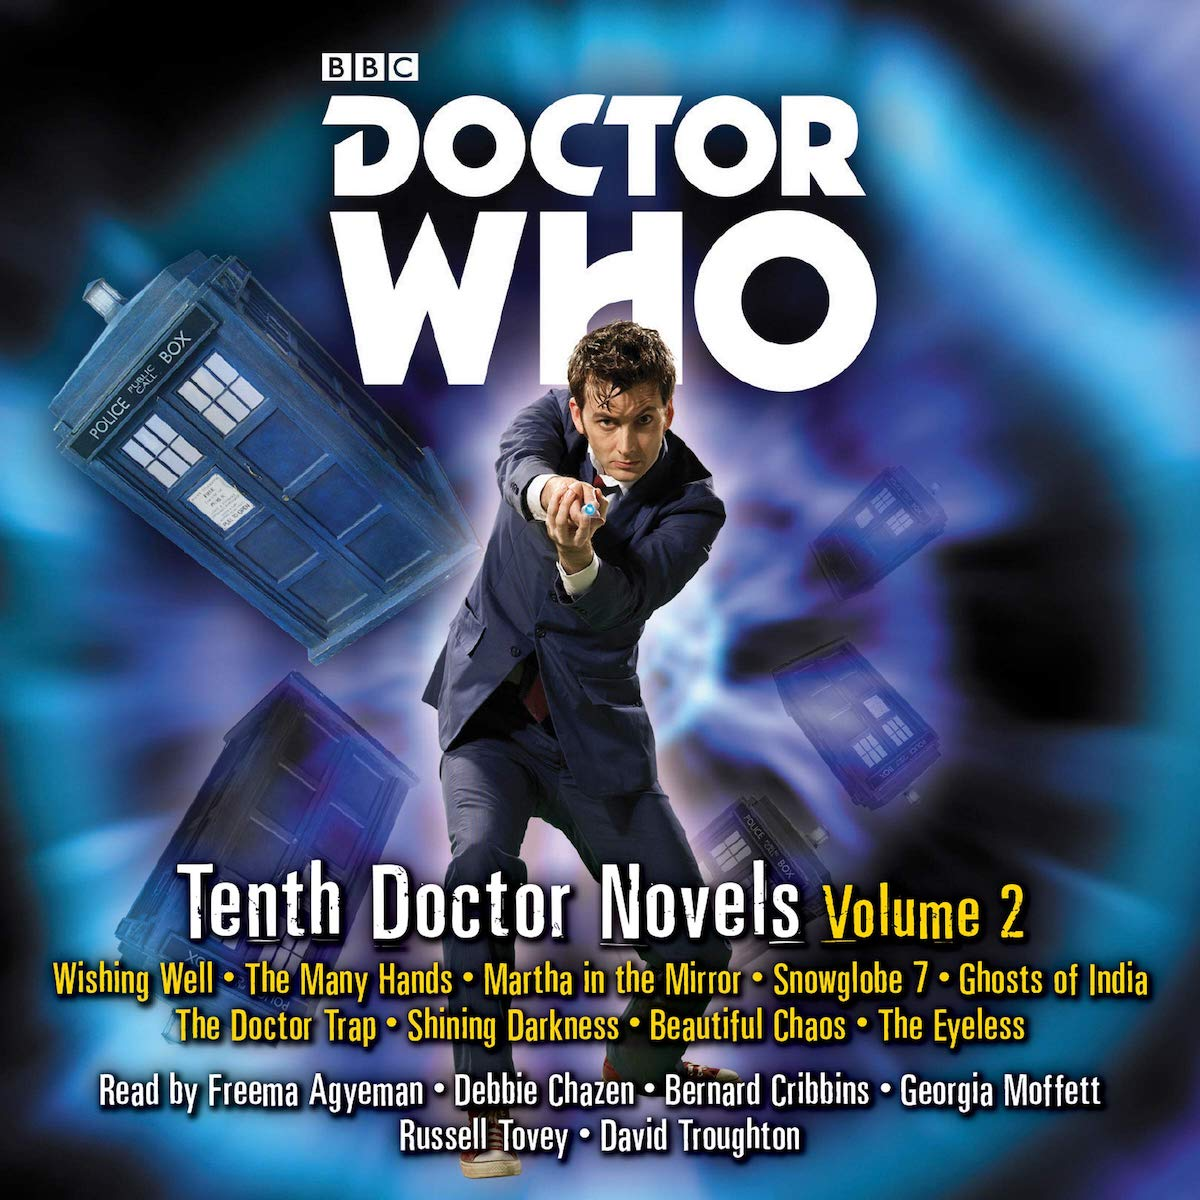 Tenth Doctor Novels: Volume 2